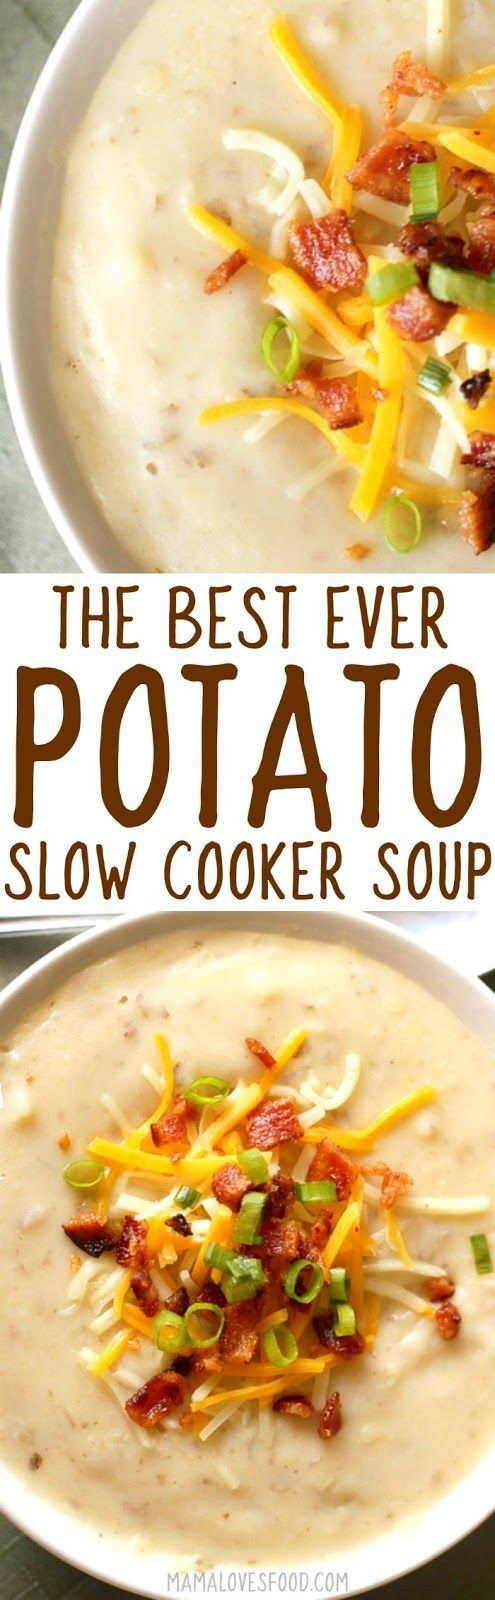 Potato Soup in the slow cooker or instant pot is the best way to make simple creamy potato soup, and with no milk or cream!